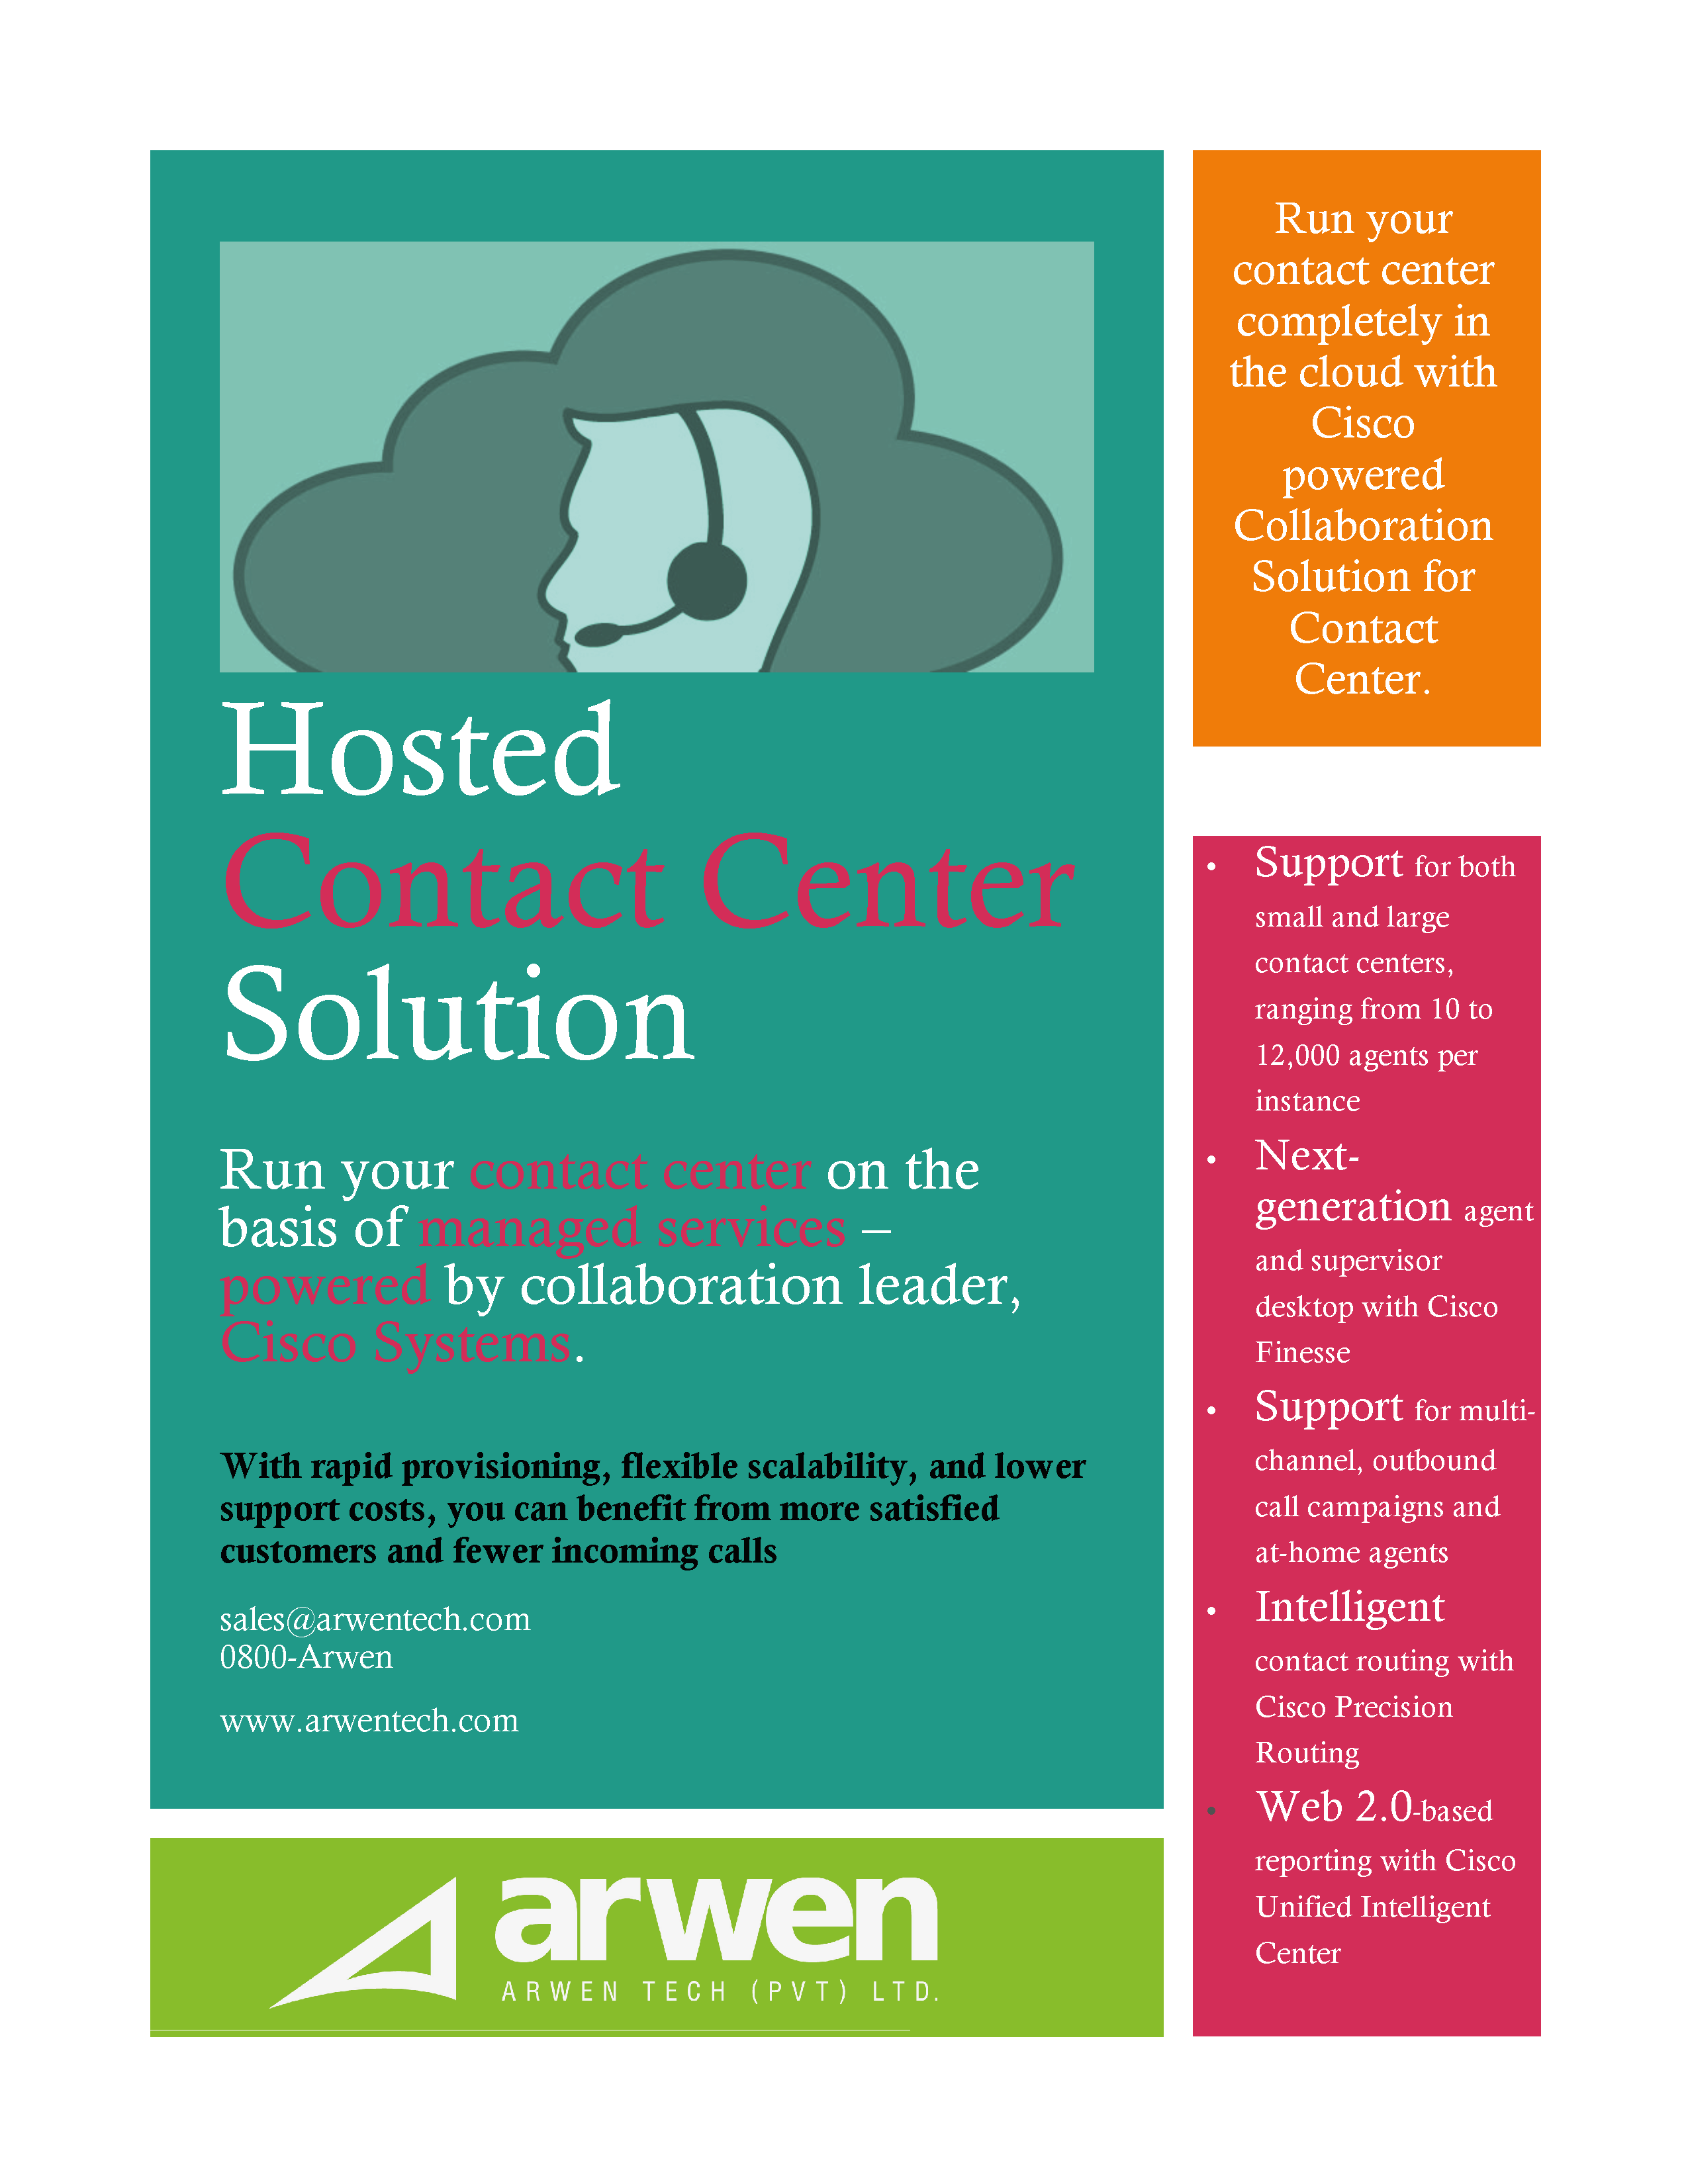 Hosted Contact Center Solution